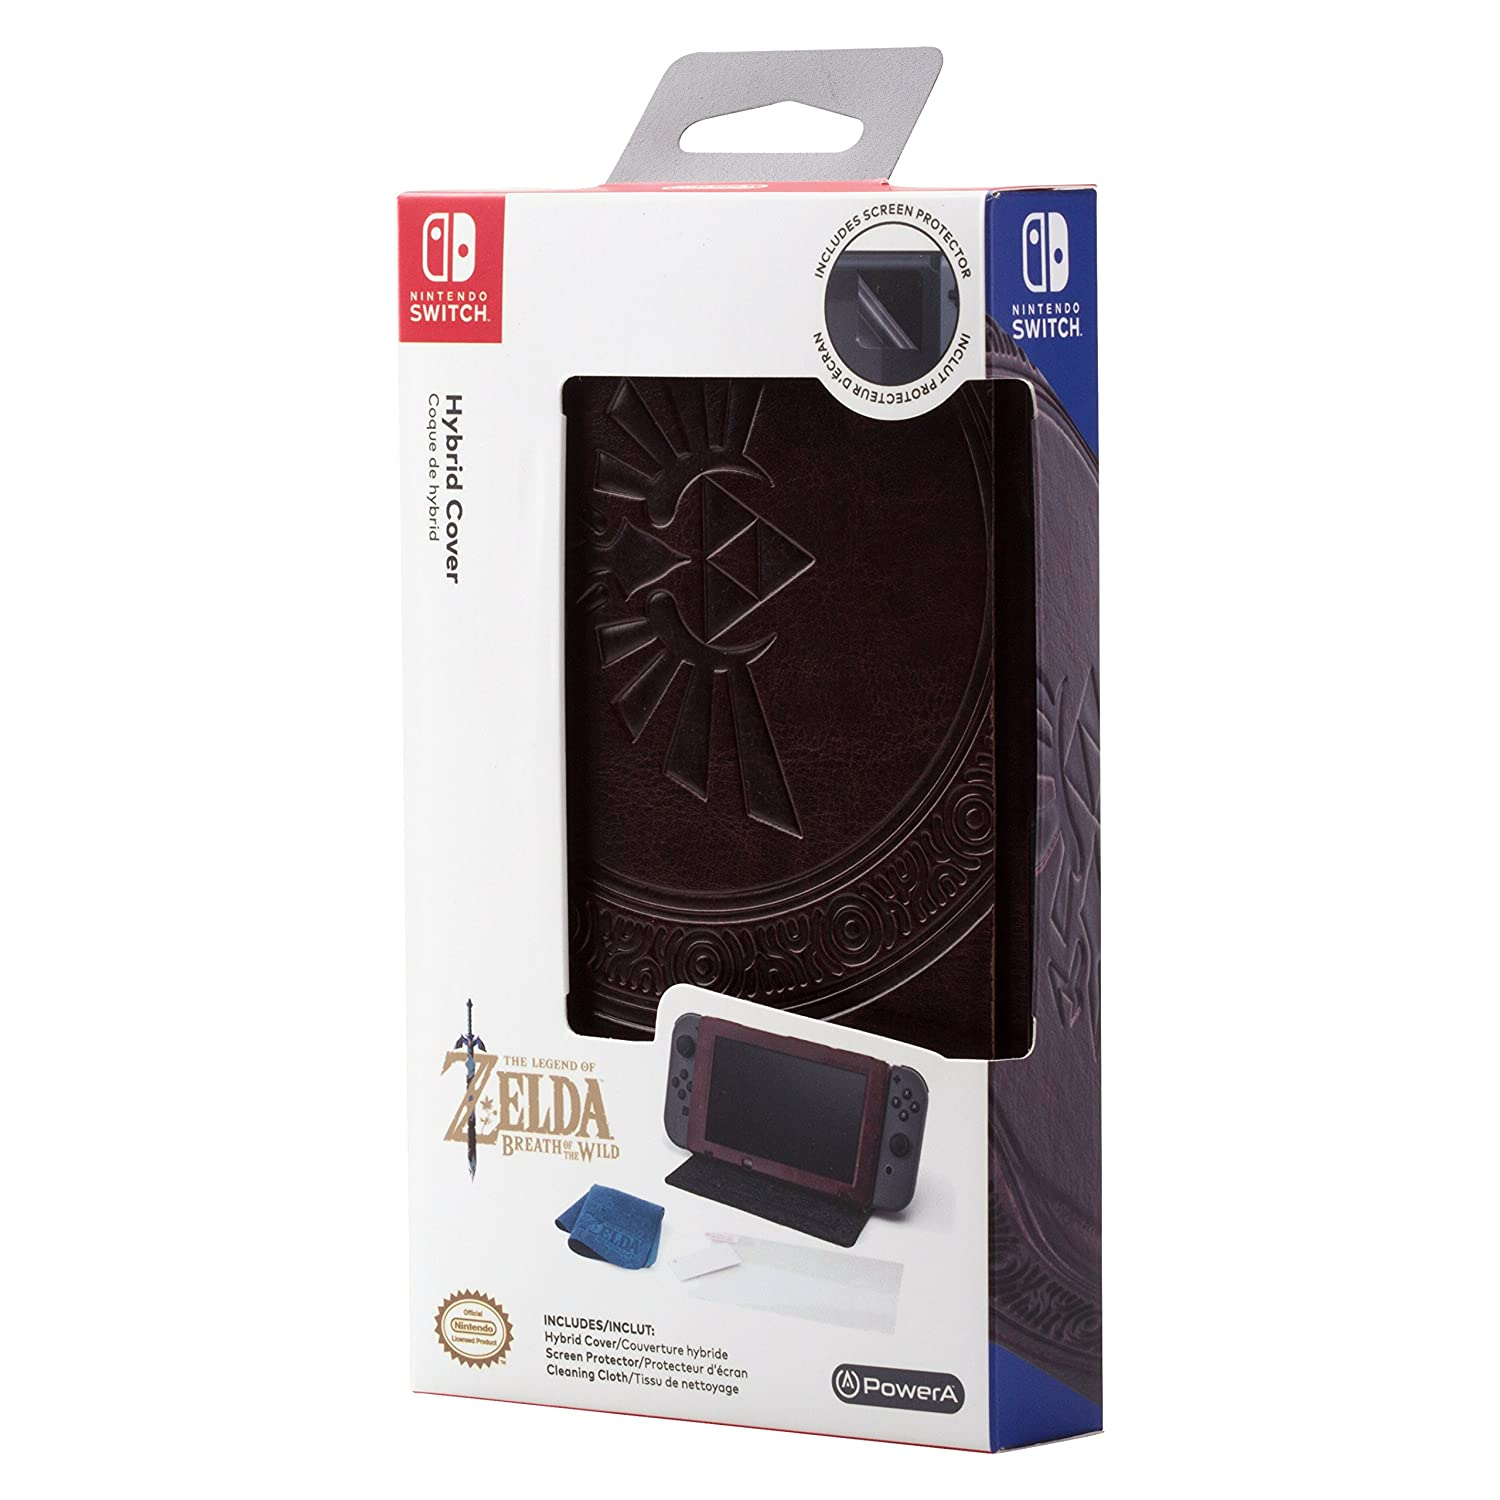 Case Hybrid Cover Zelda Leatherette (Envio Internacional) - Nintendo Switch